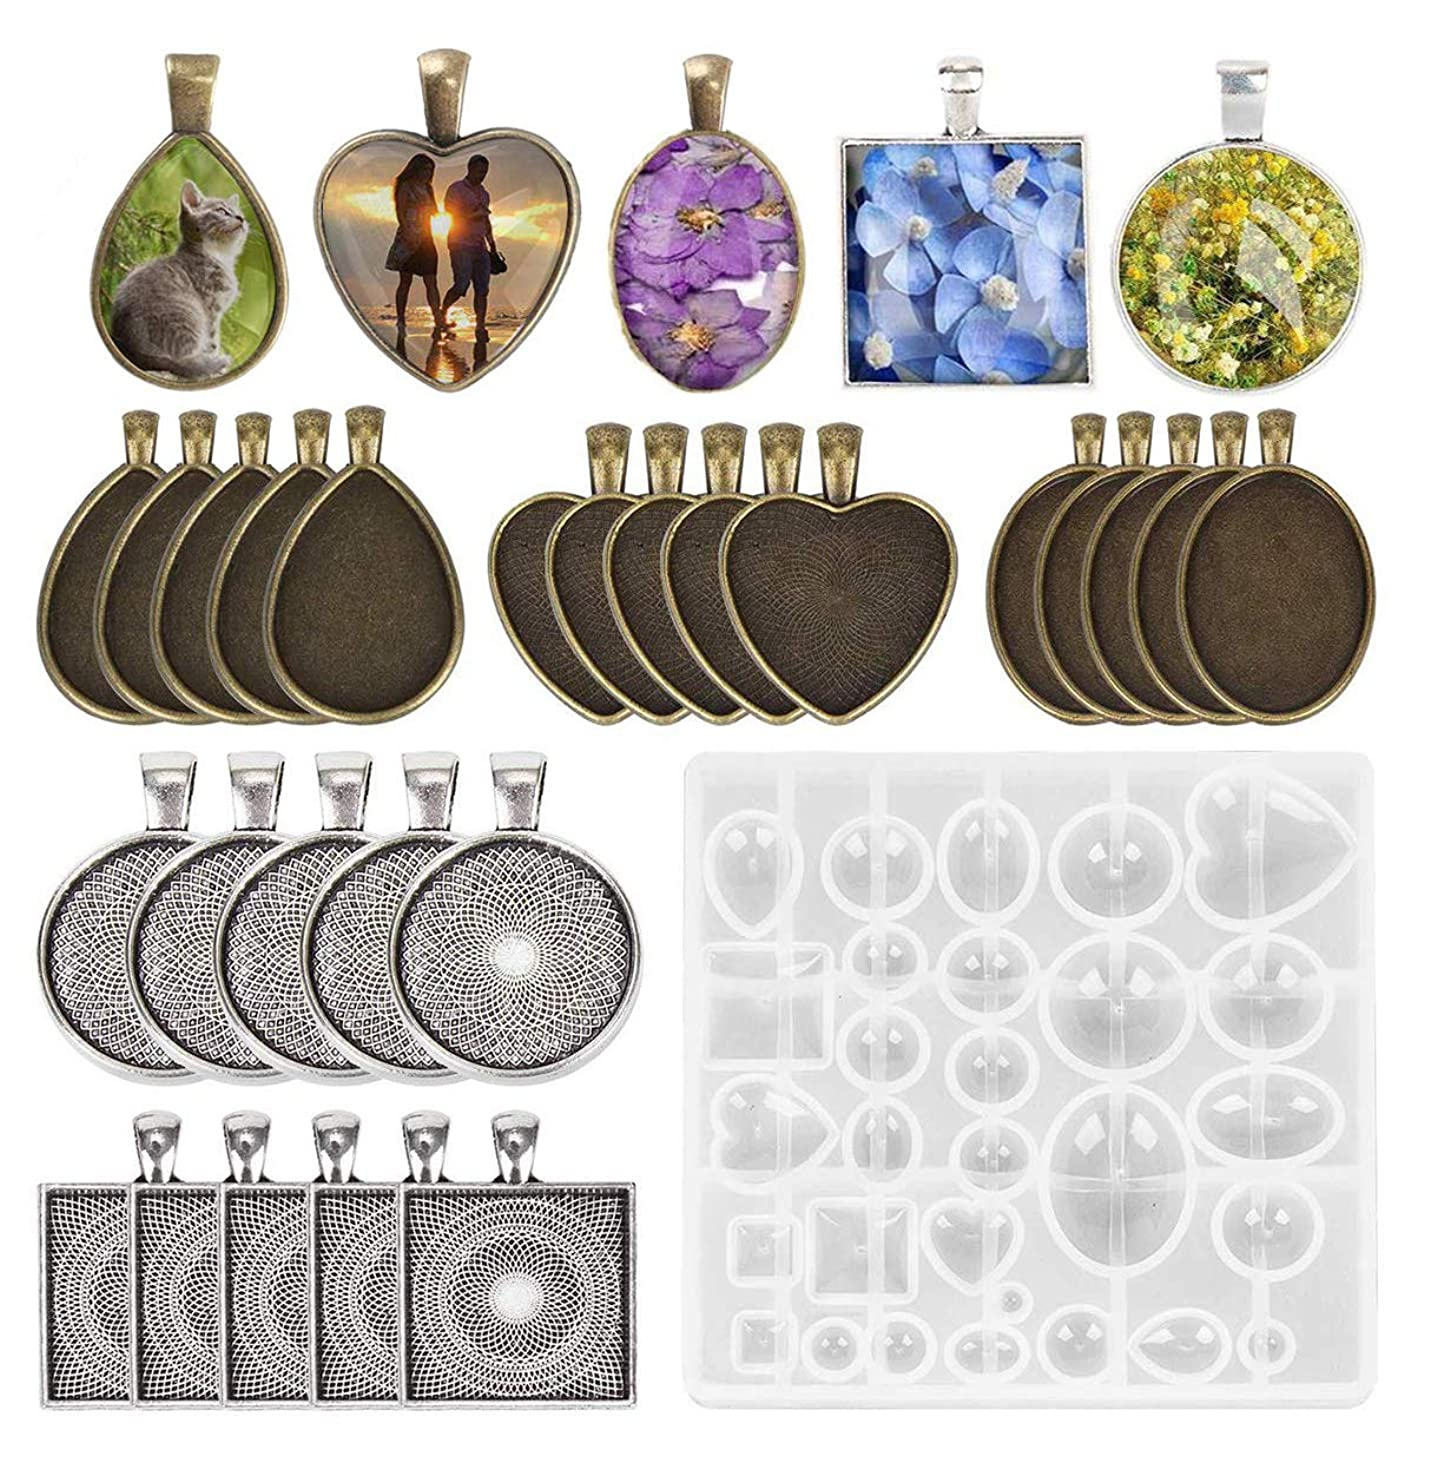 Fashionclubs 5 Styles Pendant Trays with 1pcs Silicone Resin Jewelry Casting Mold, 30pcs Bezel Trays Pendant Blanks Round Square Heart Teardrop Oval Vintage Pendant Bezel Trays for Photo Jewelry DIY